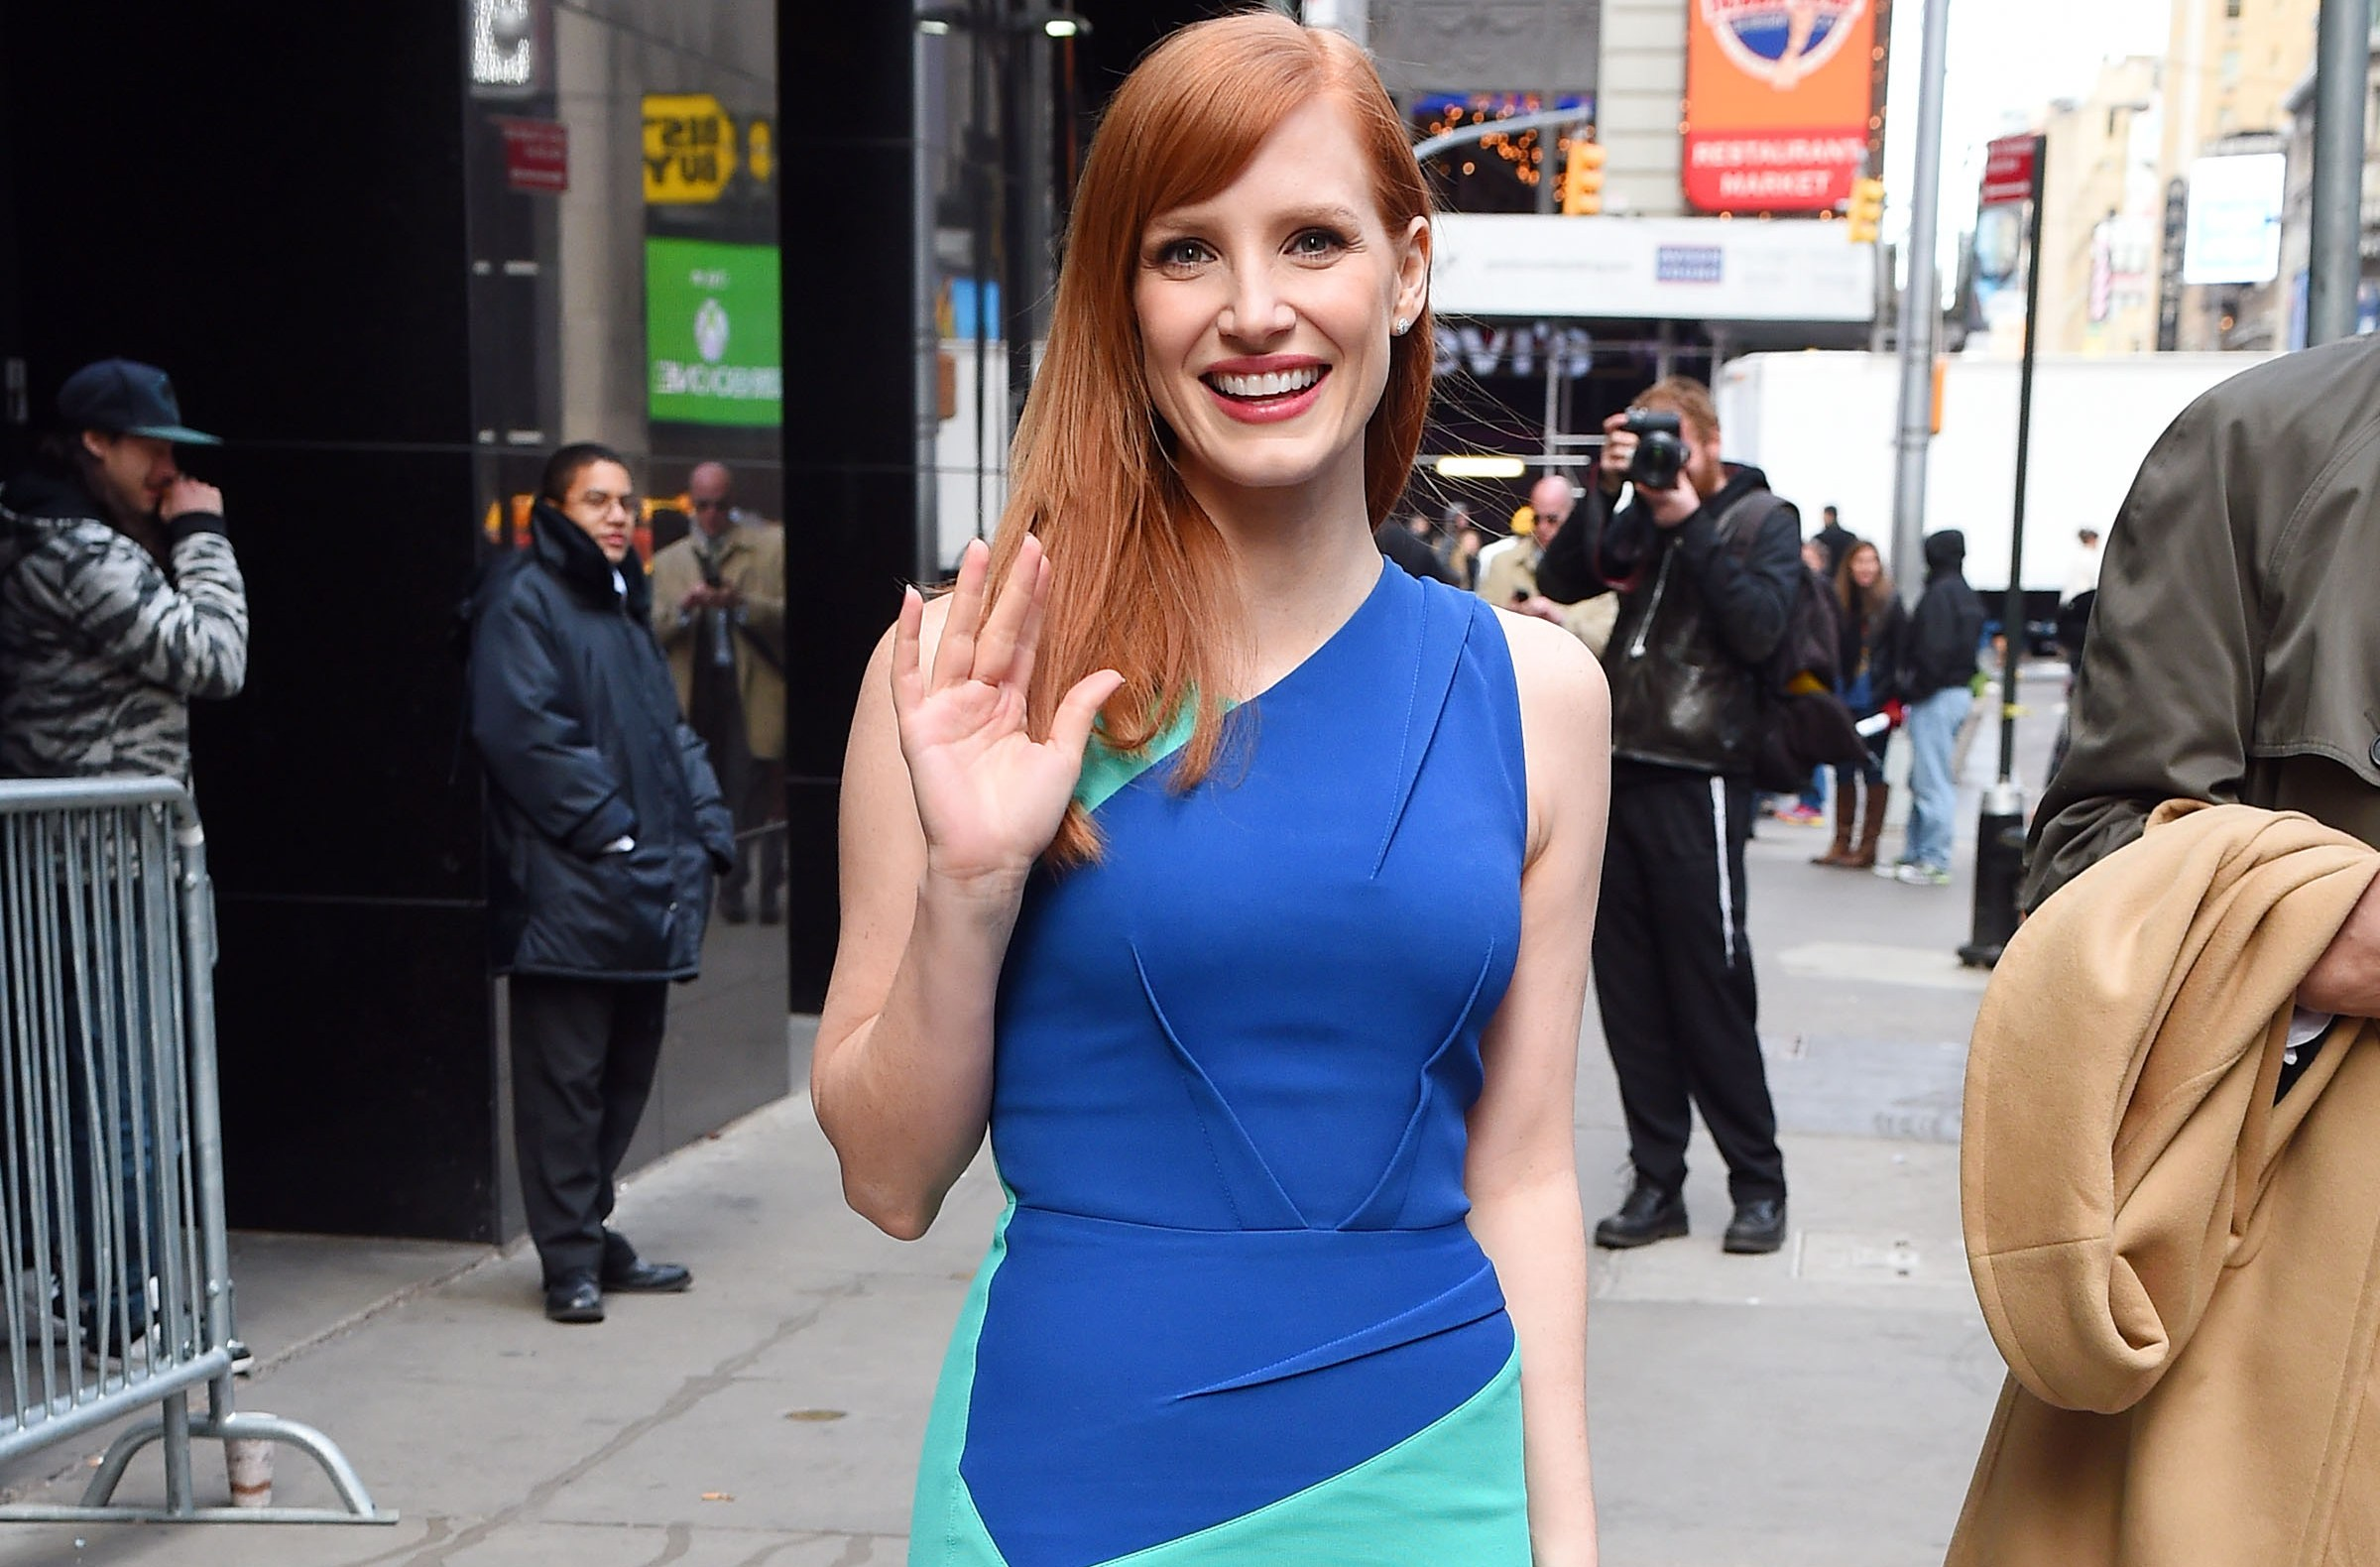 Jessica Chastain promotes Interstellar at GMA in NYC.